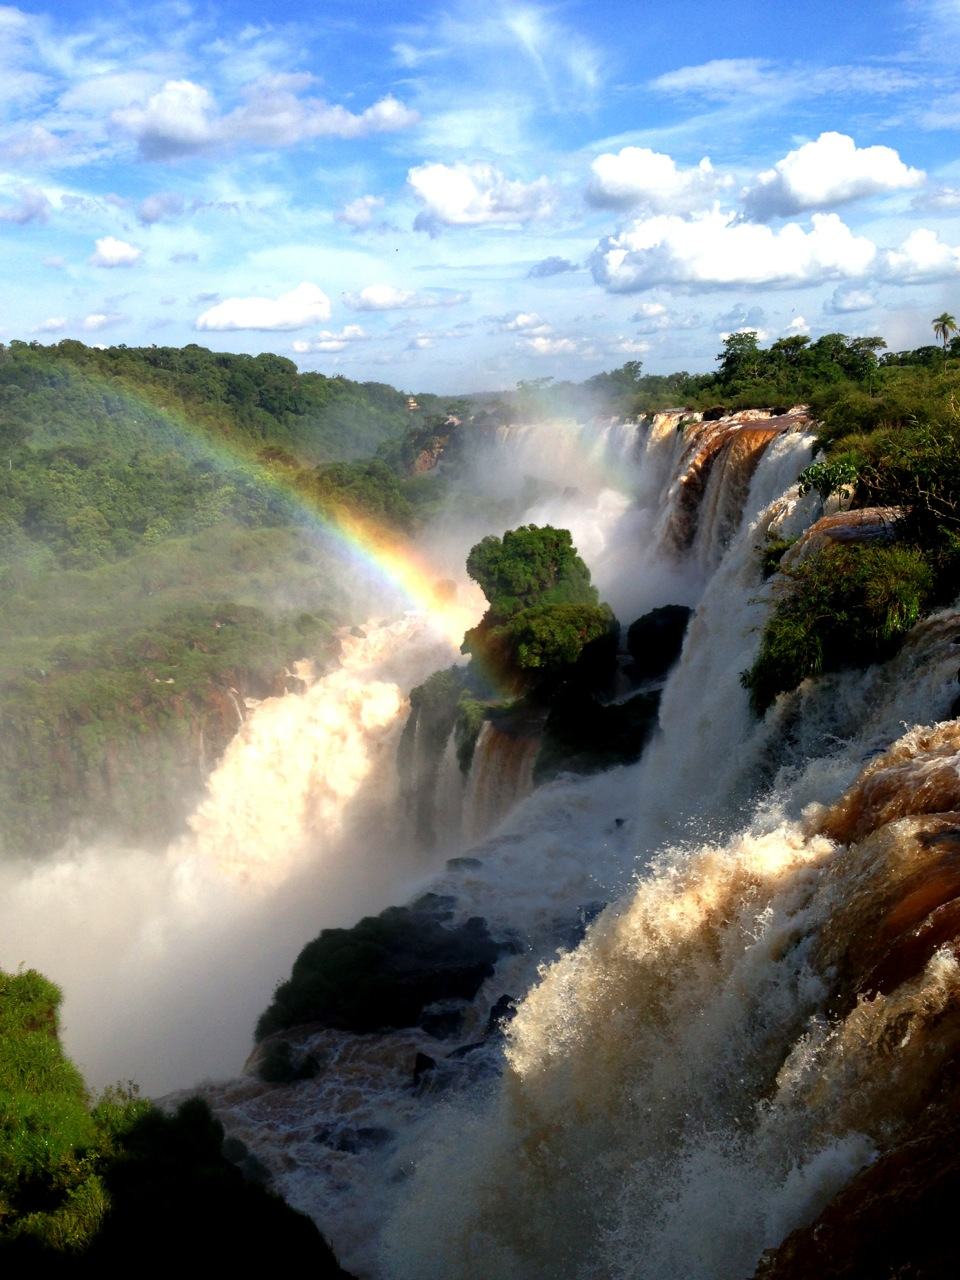 Waterfalls & Rainbows: two days at Iguazu Falls